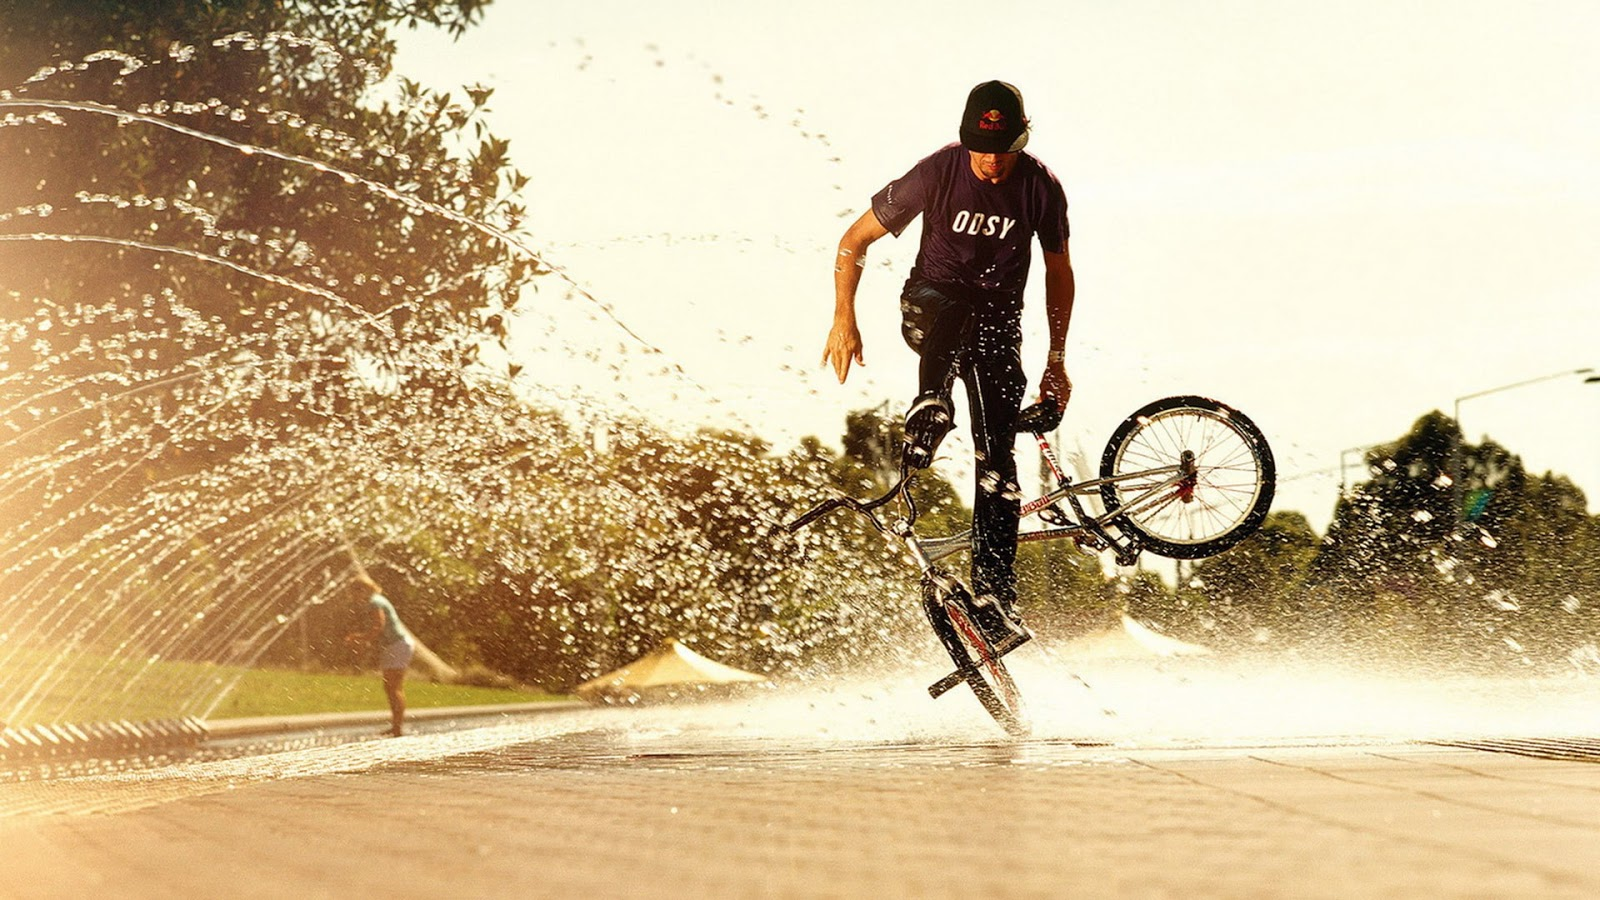 wallpapers hd for mac: BMX Freestyle Wallpaper HD  |Bmx Freestyle Wallpaper